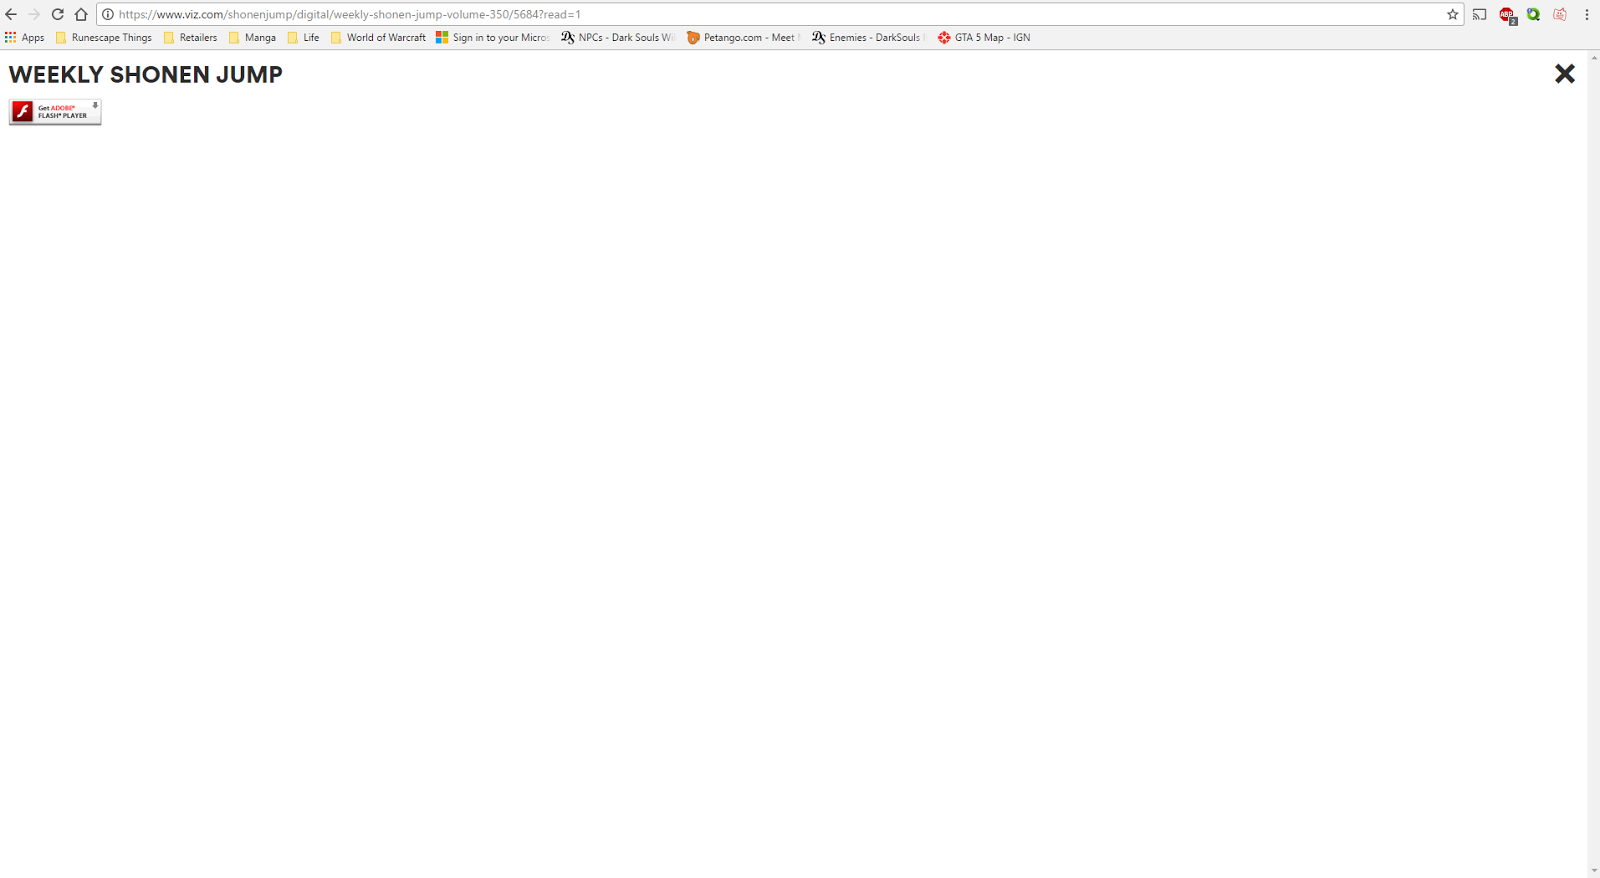 Google Chrome not working with websites that use flash - Google